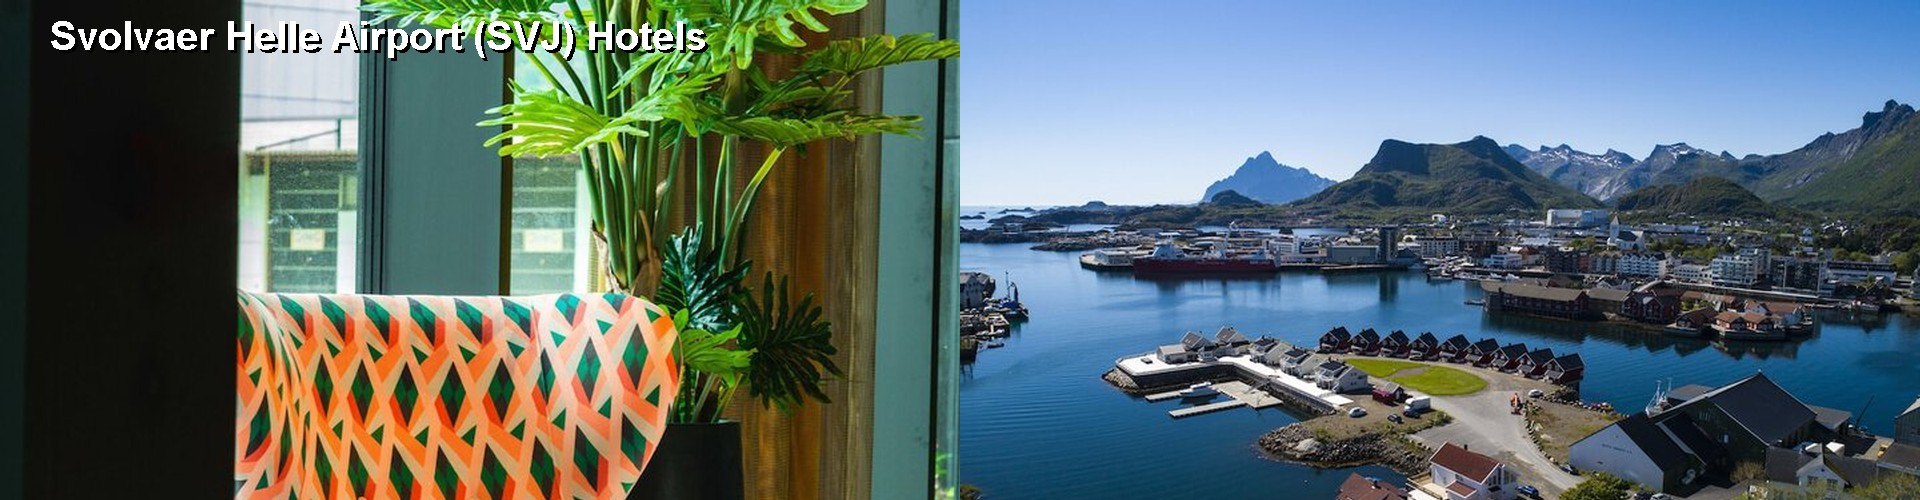 2 Best Hotels near Svolvaer Helle Airport (SVJ)